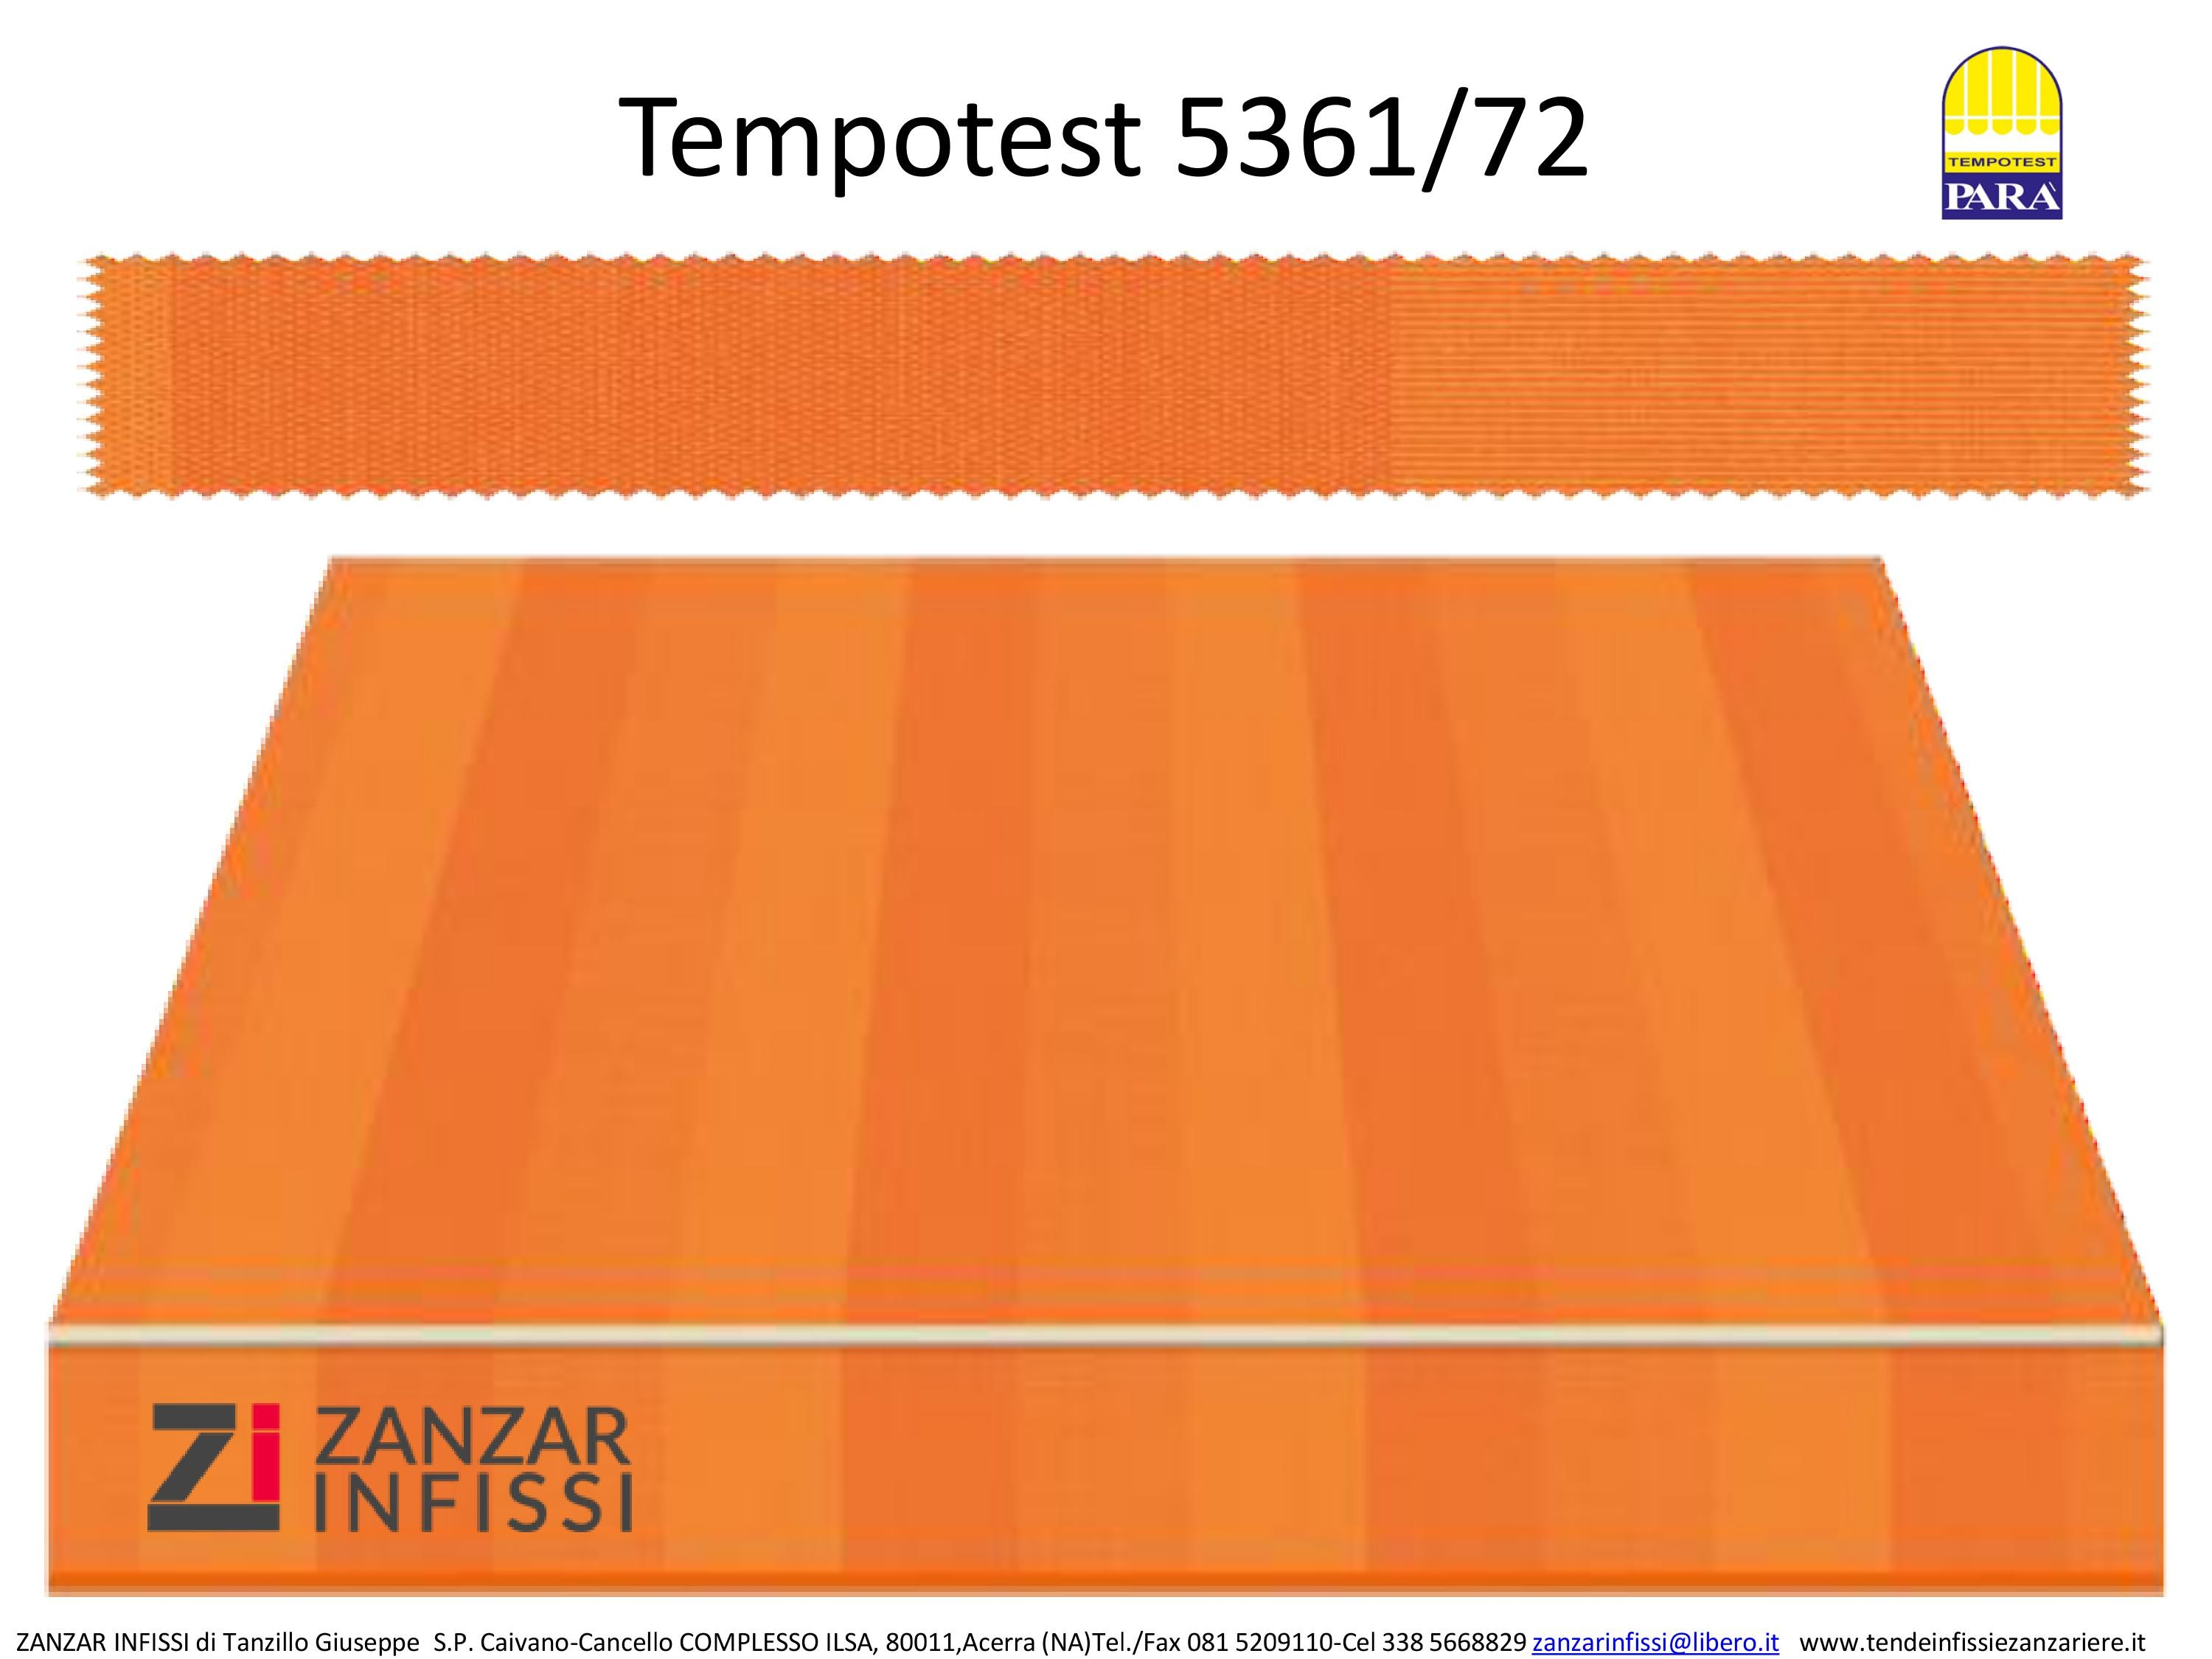 Tempotest 5361/72